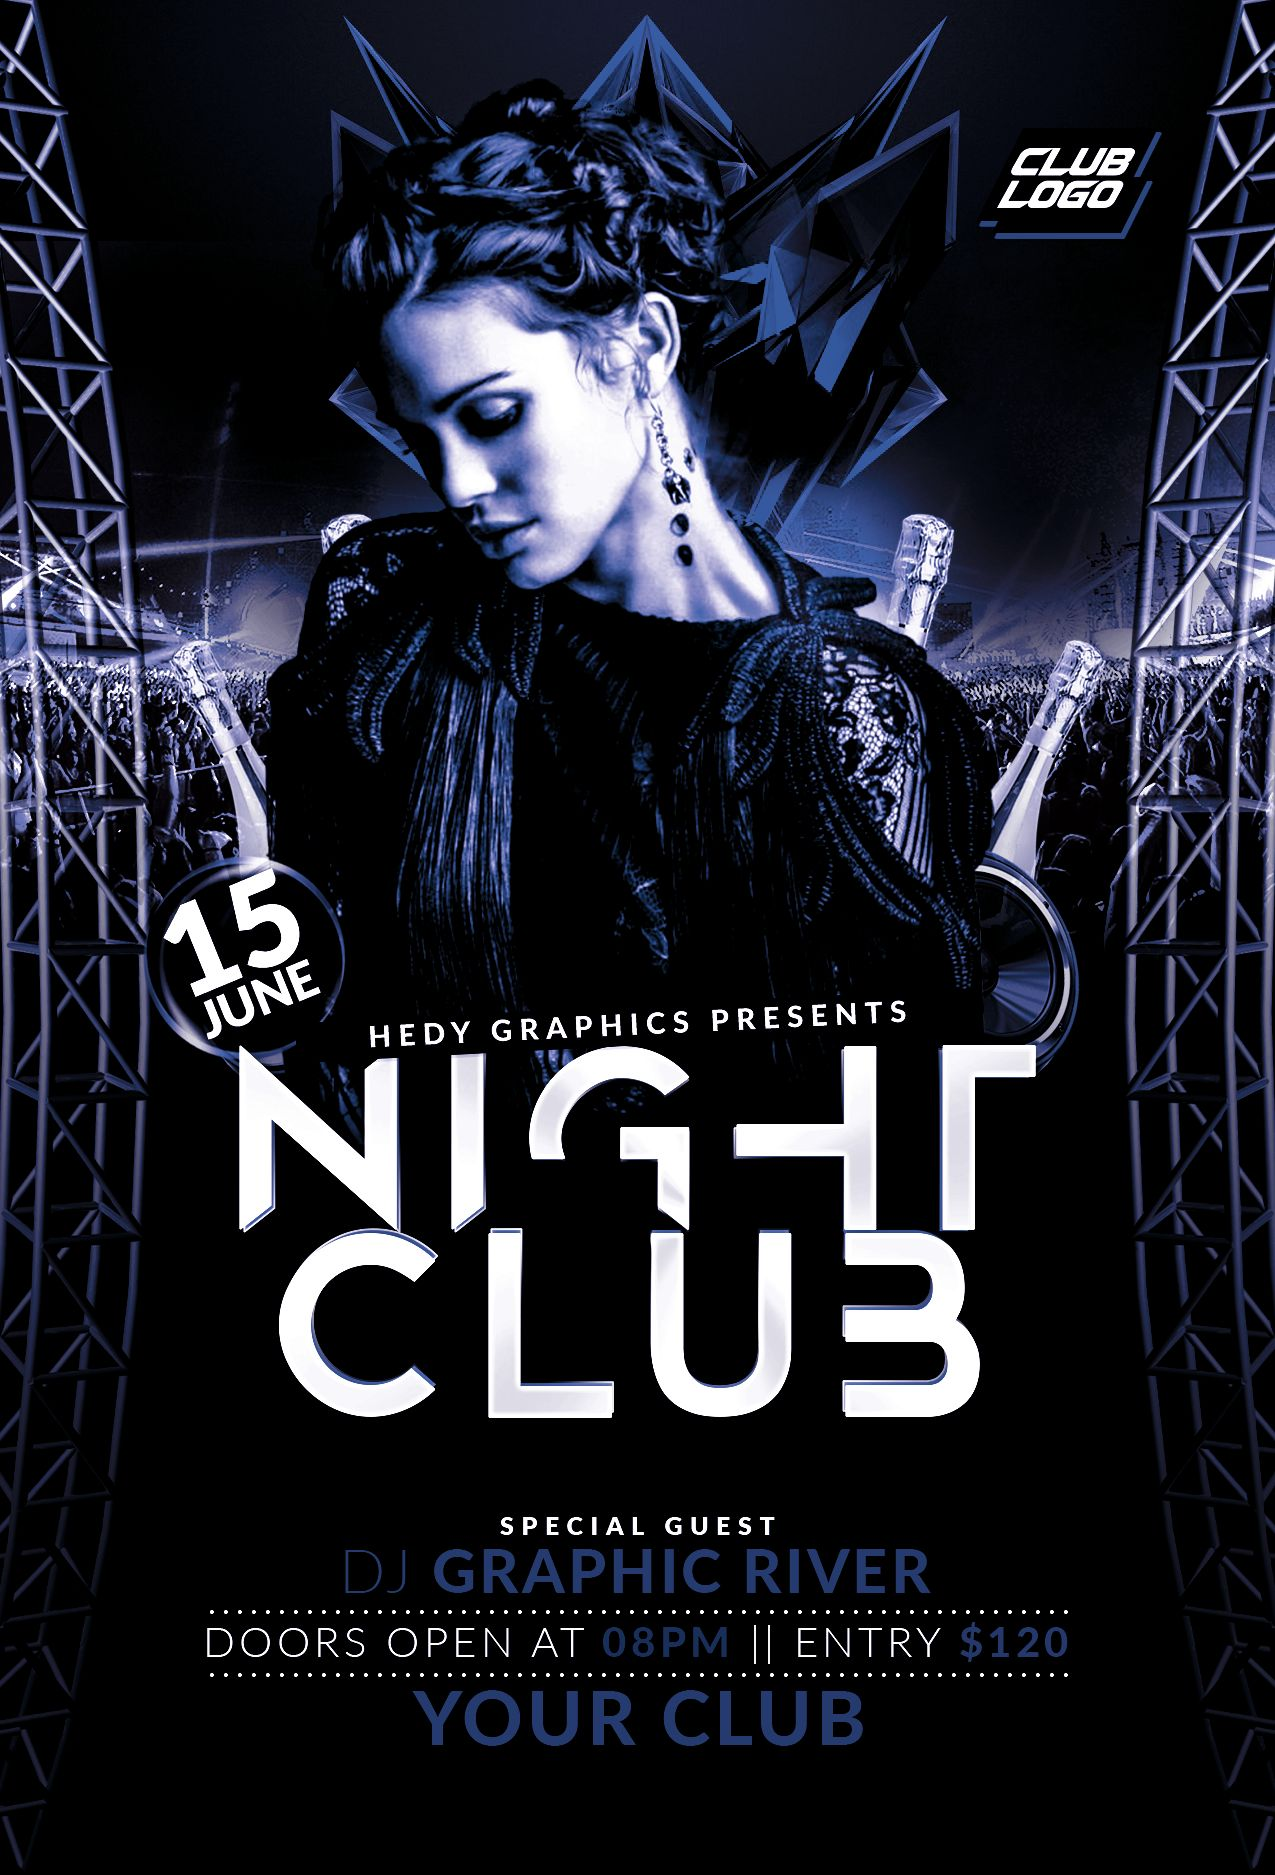 Night Club Flyer Screenshot 1